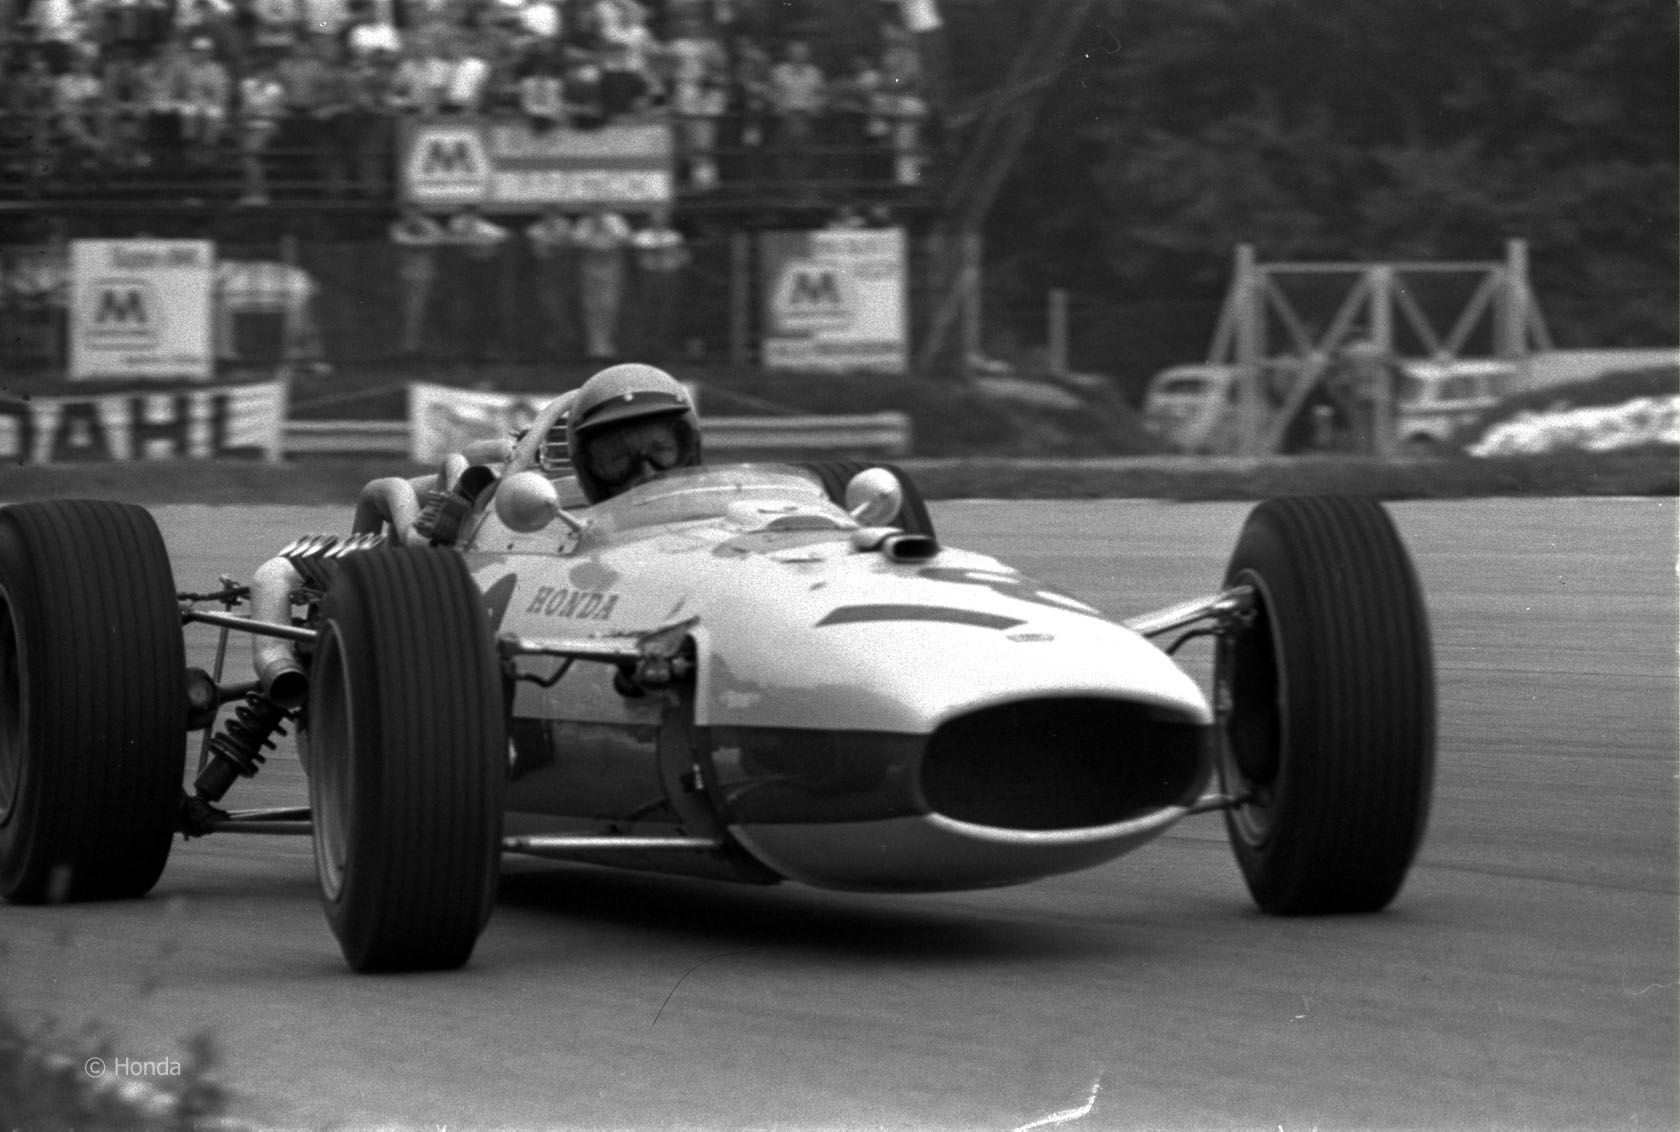 1966 HONDA F-1 GP Richie Ginther, Mexican GP 1965 | RICHIE GINTHER ALBUM | Pinterest | F1,  Honda and Grand prix